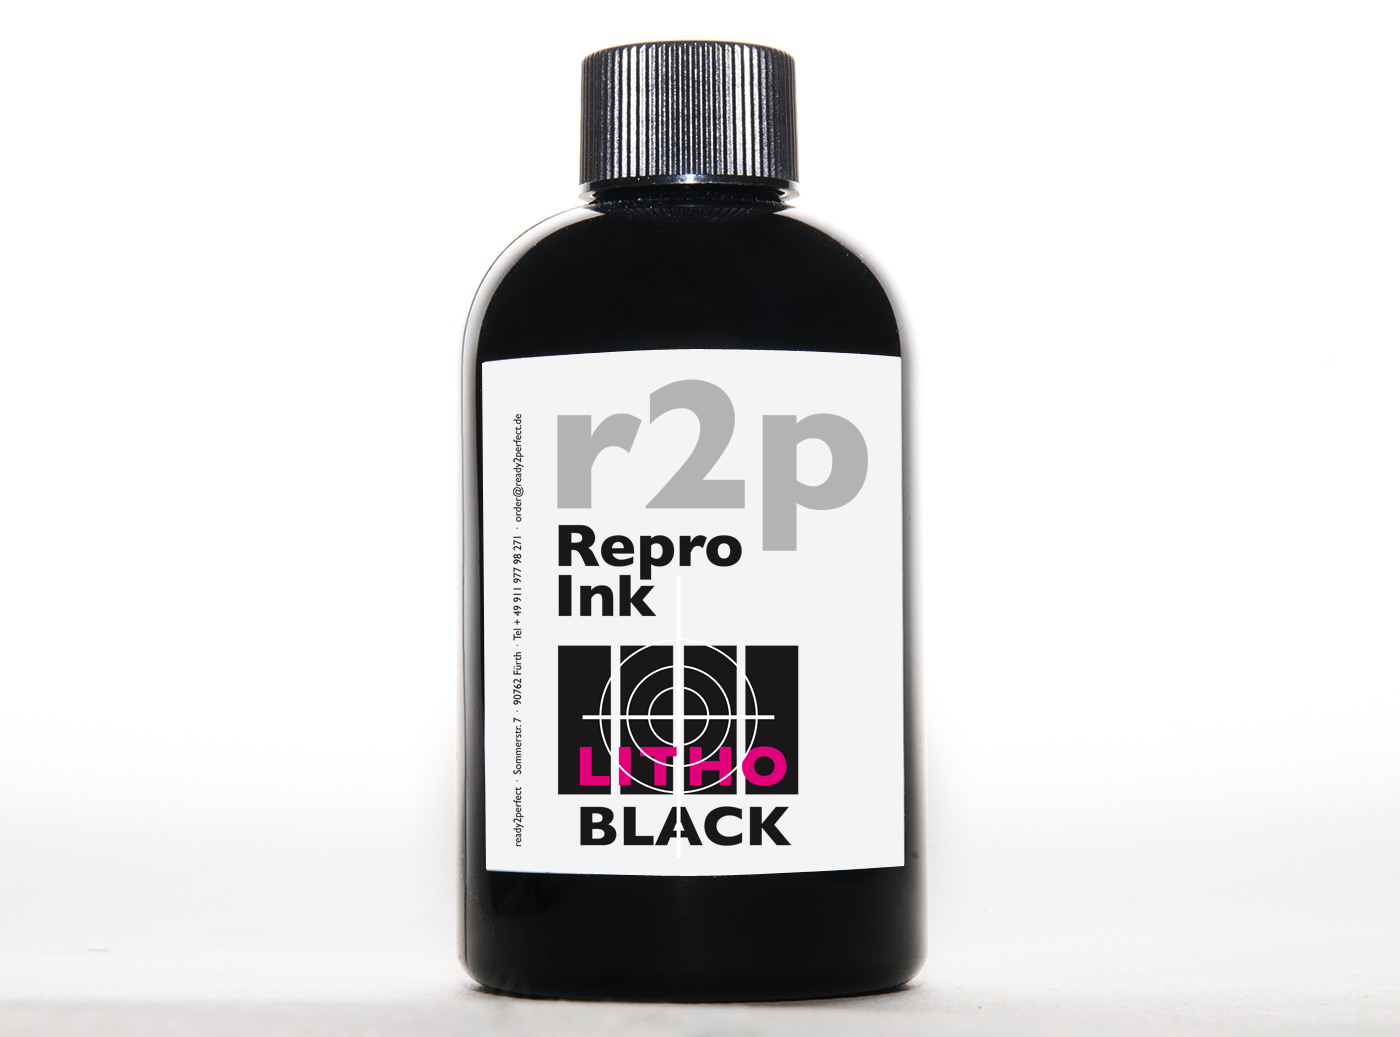 r2p Repro Ink